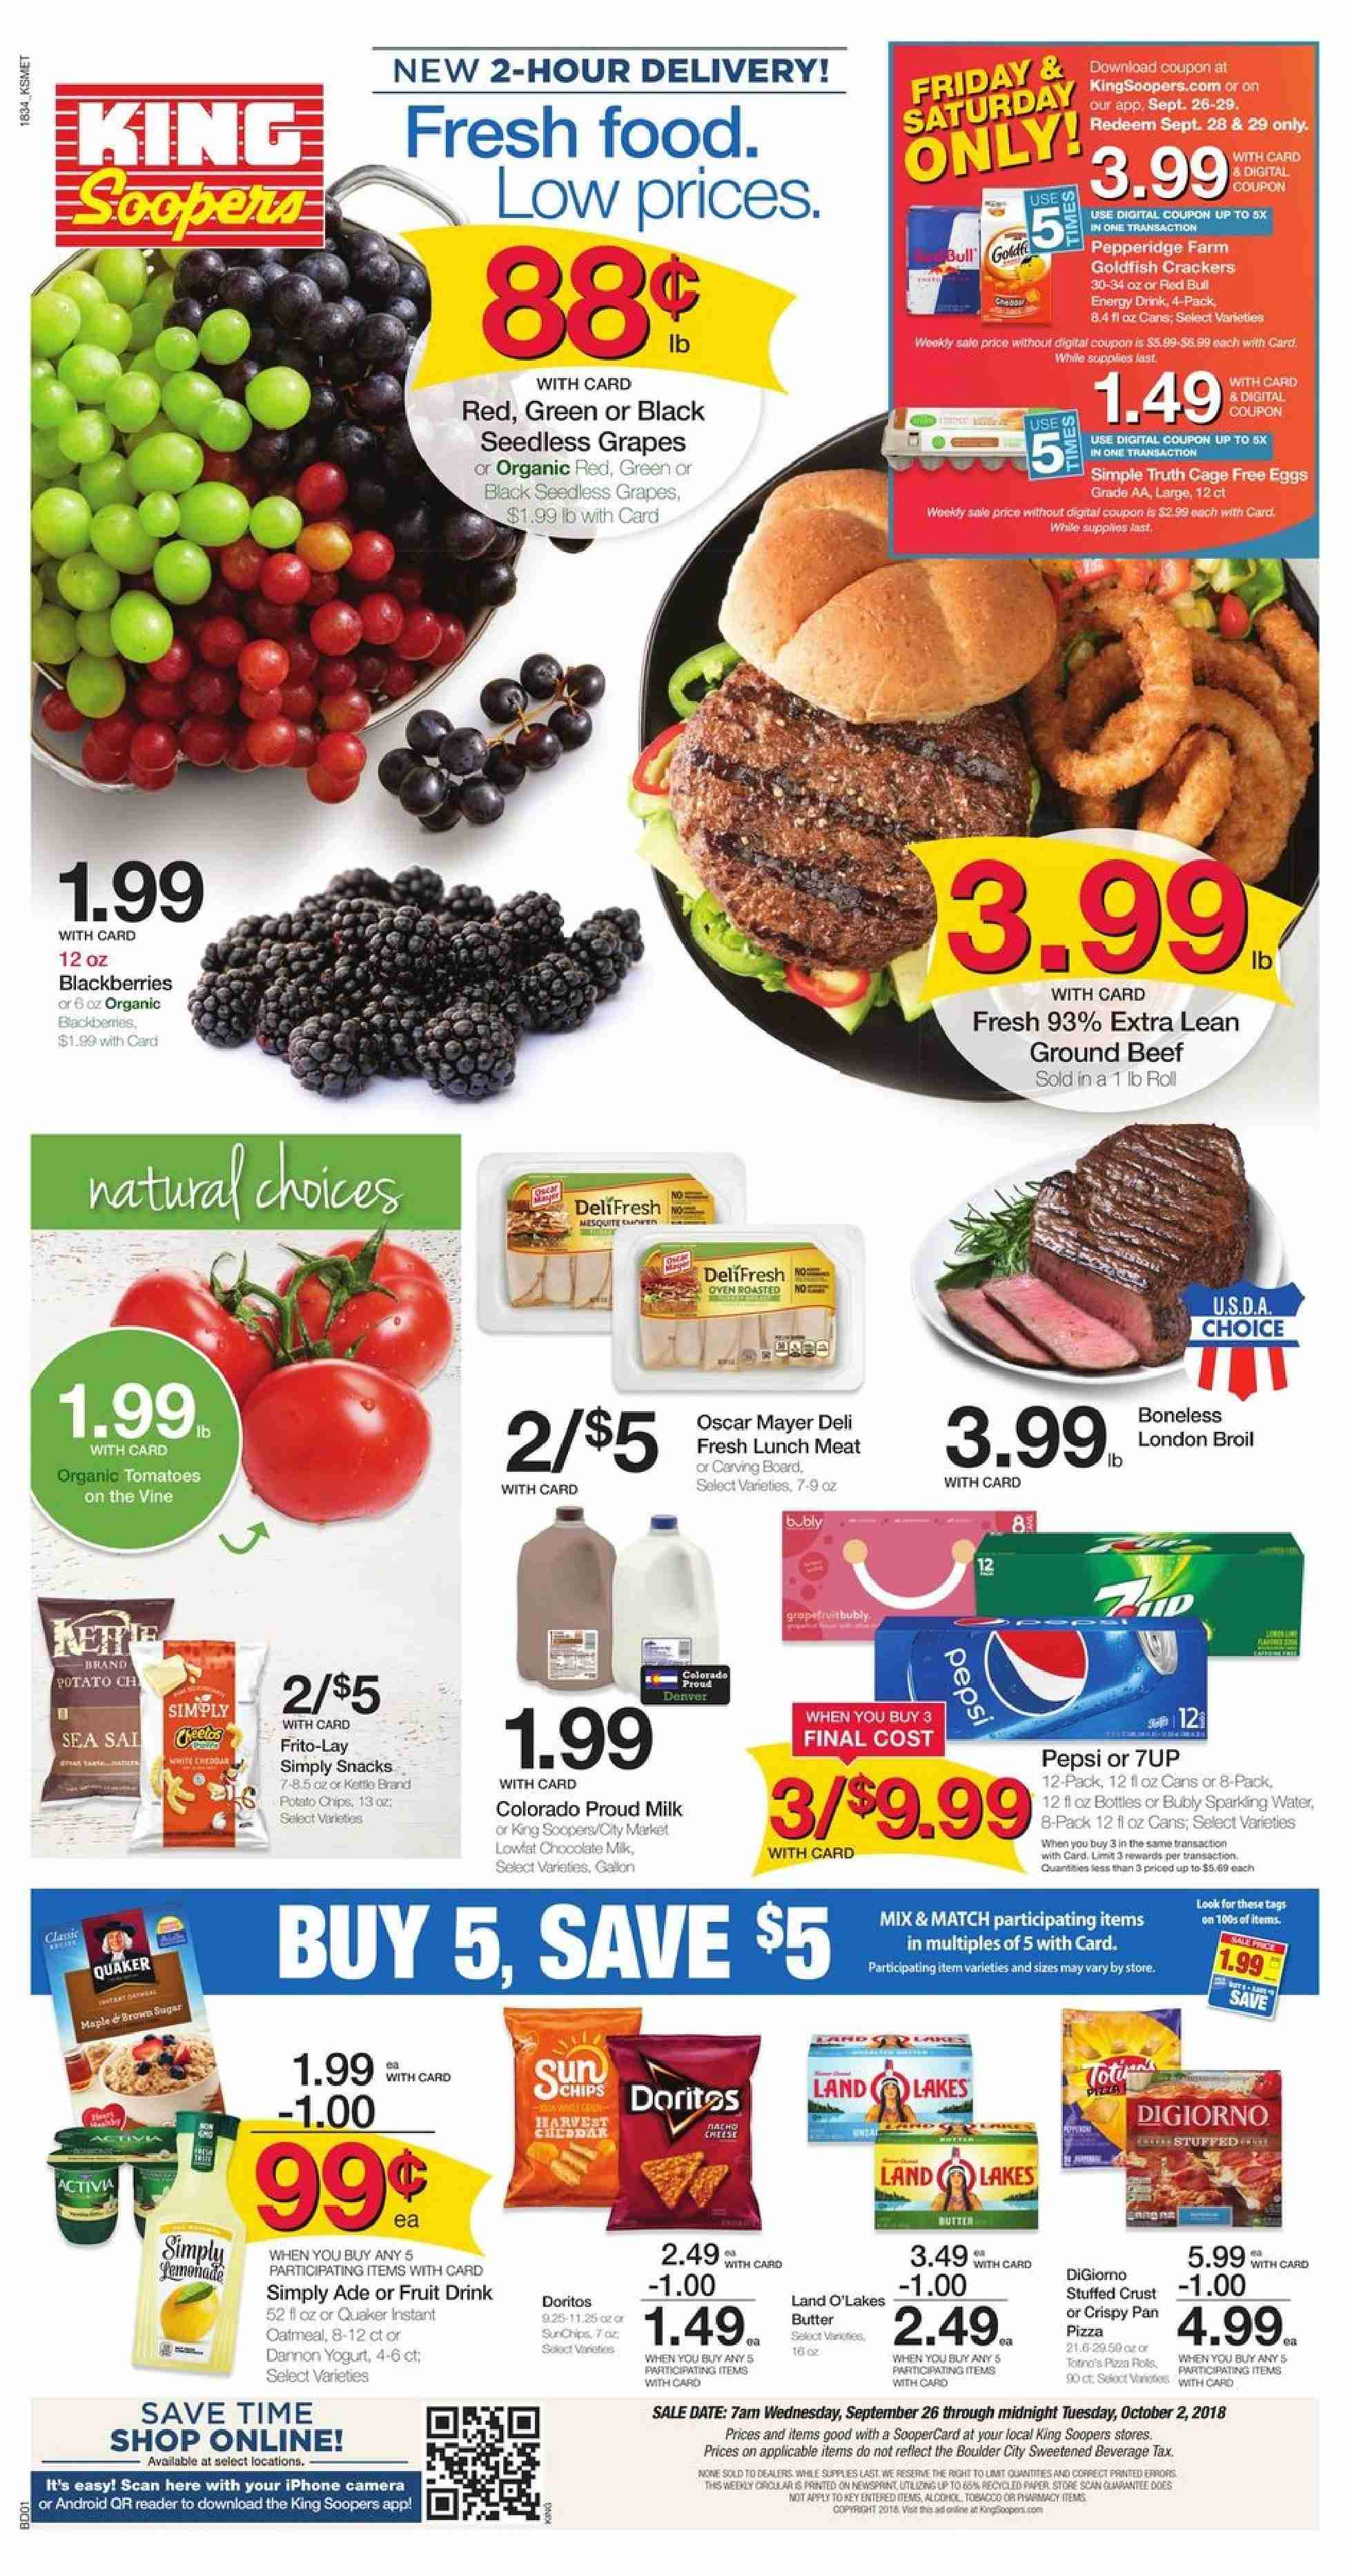 King Soopers Flyer  - 09.26.2018 - 10.02.2018. Page 1.